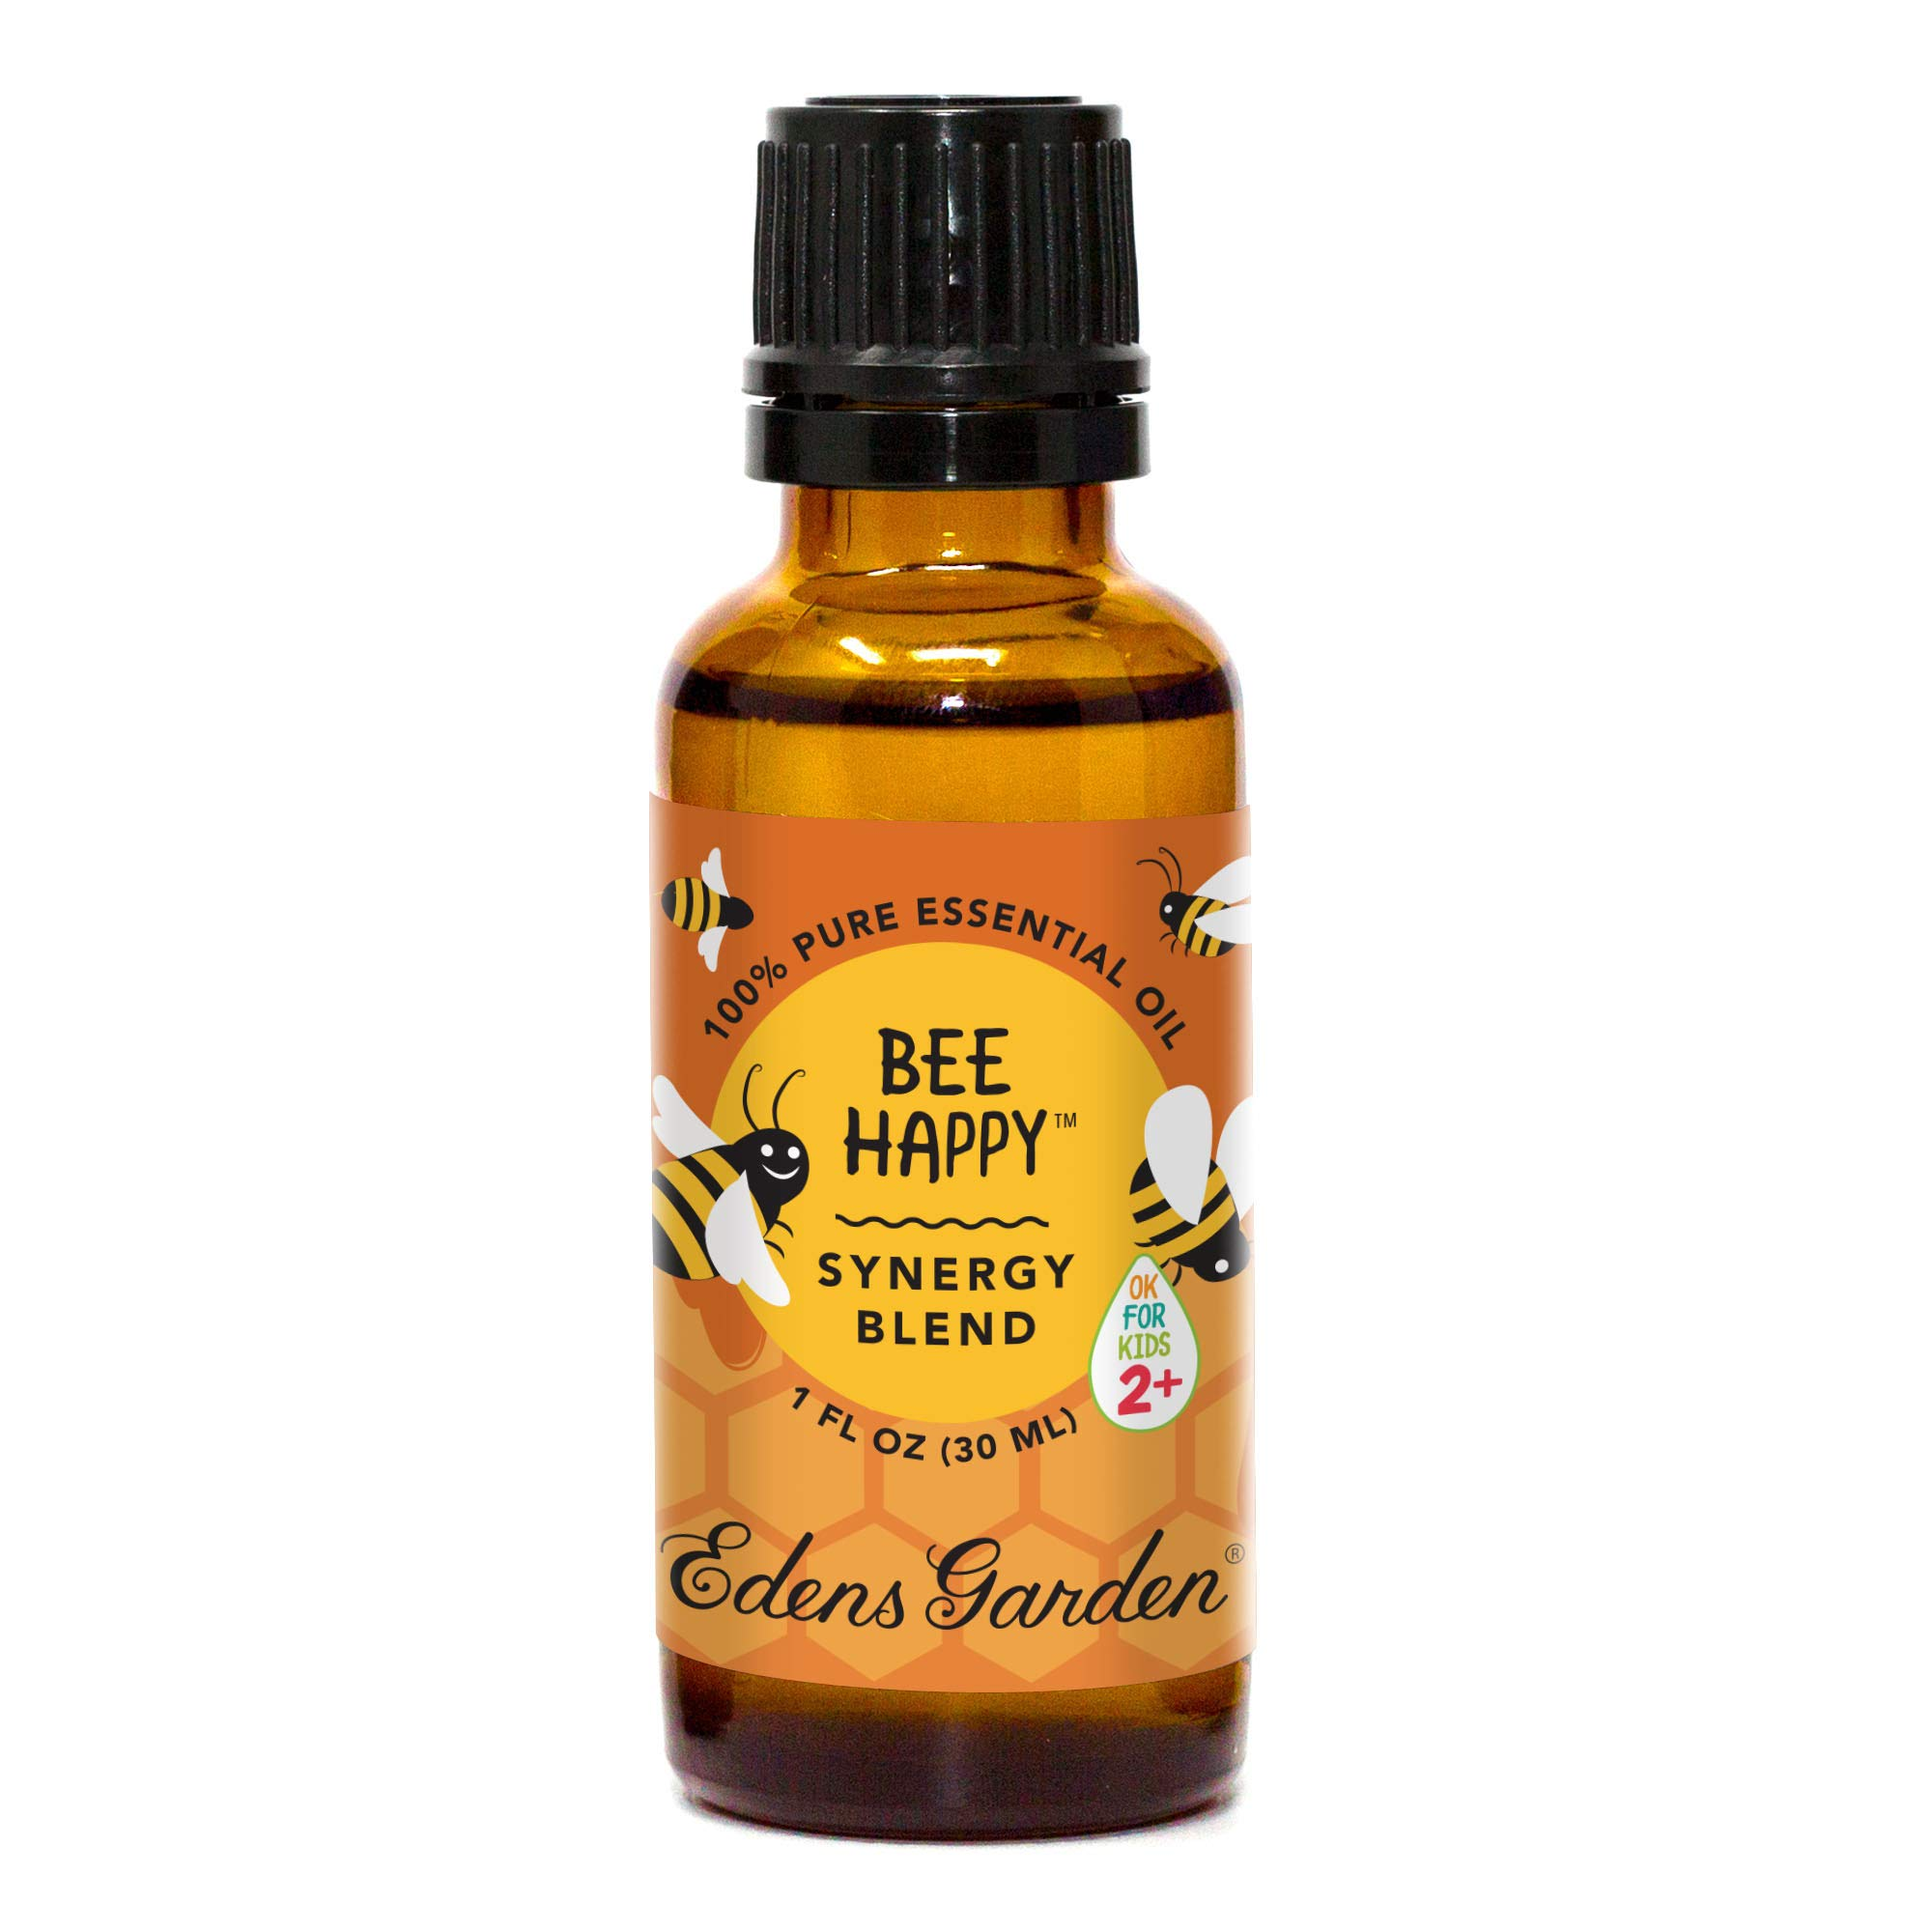 Edens Garden Bee Happy 30 ml Synergy Blend 100% Pure Undiluted Therapeutic Grade GC/MS Certified Essential Oil